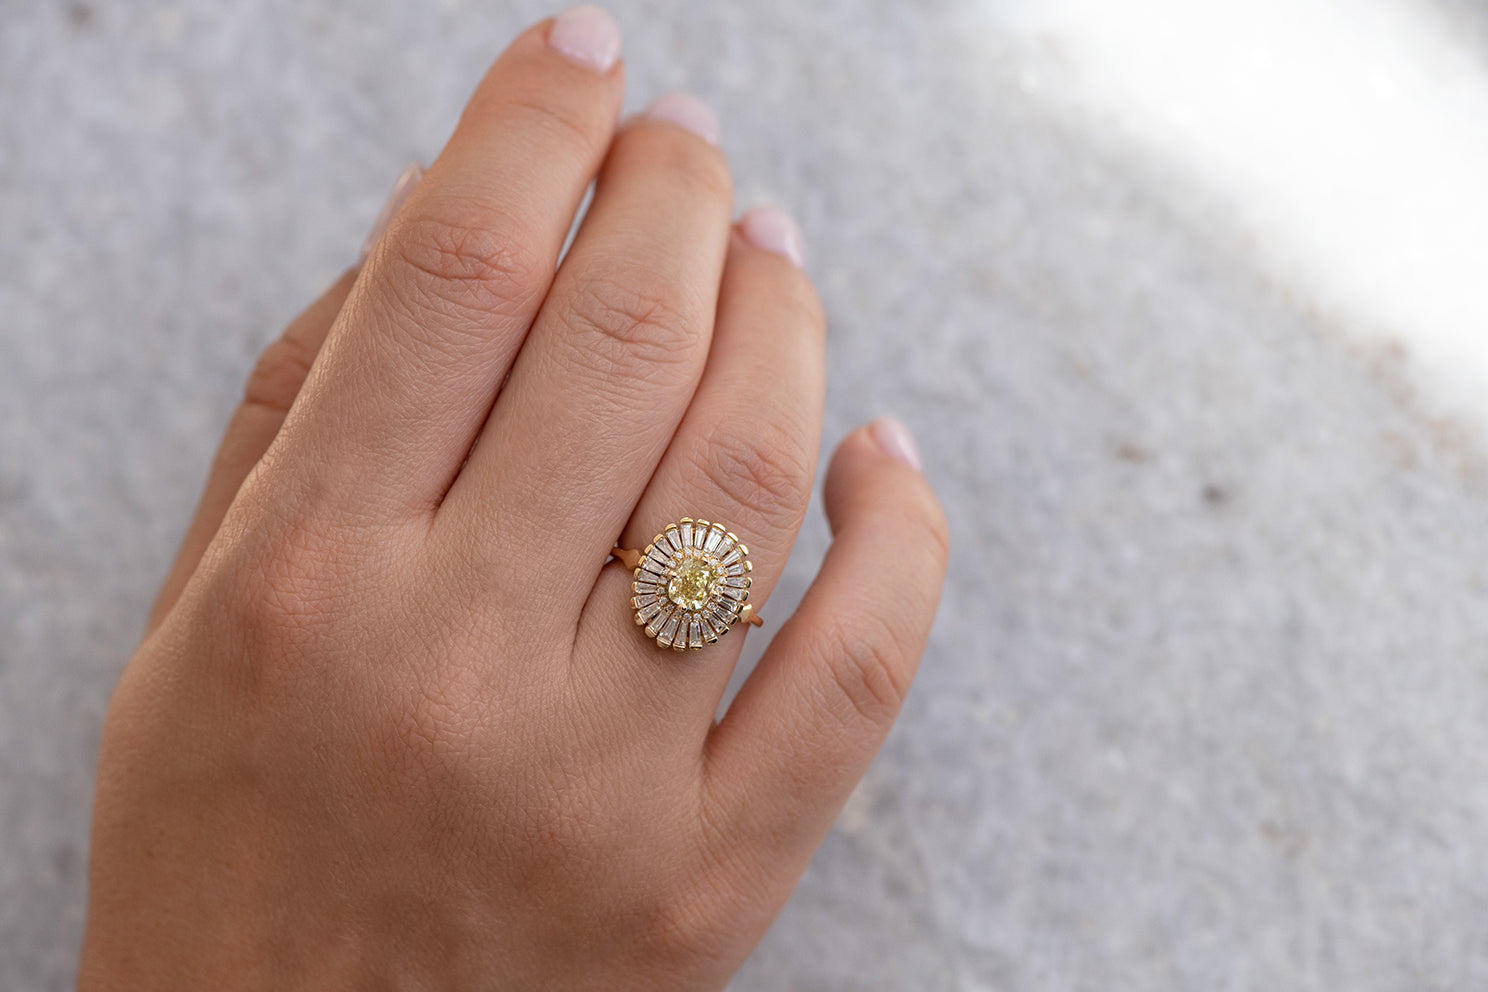 Daisy Engagement Ring - Fancy Yellow Diamond and Baguette Diamond Ring on Hand Look Down View